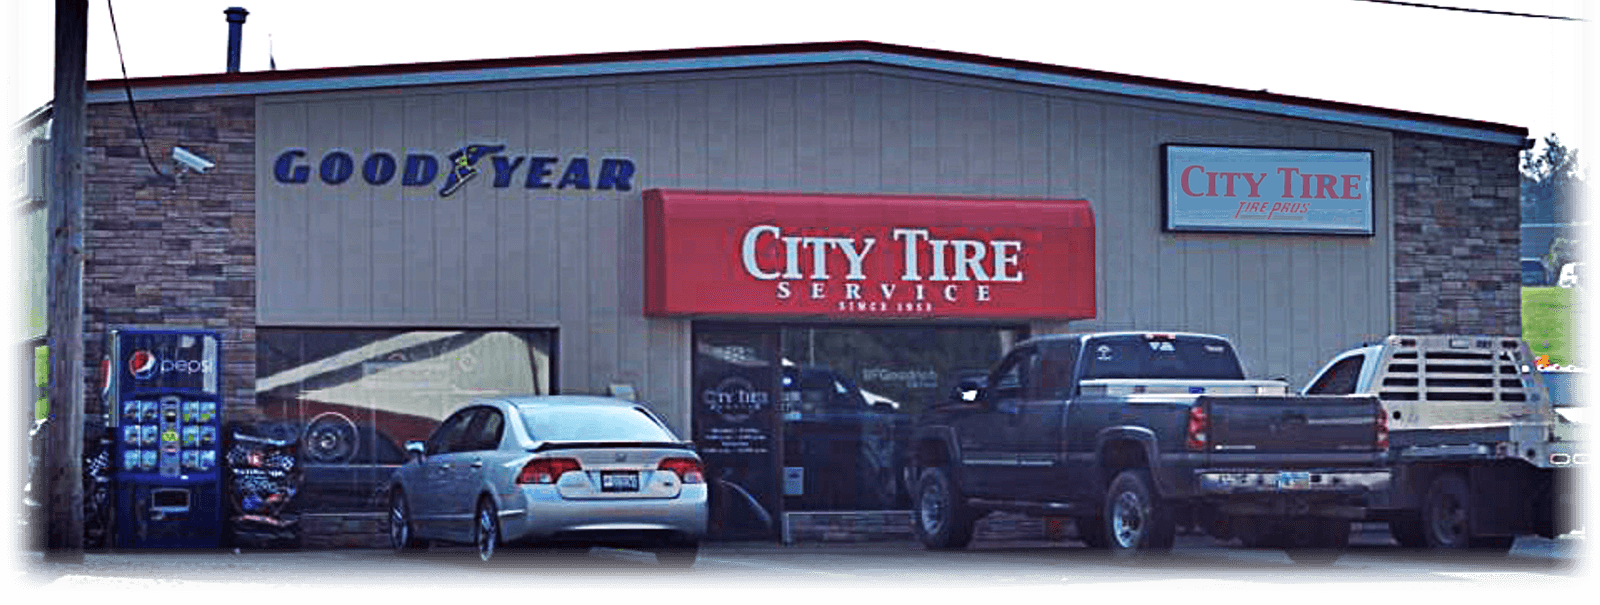 City Tire Pros in Zanesville, OH 43701 - ChamberofCommerce.com